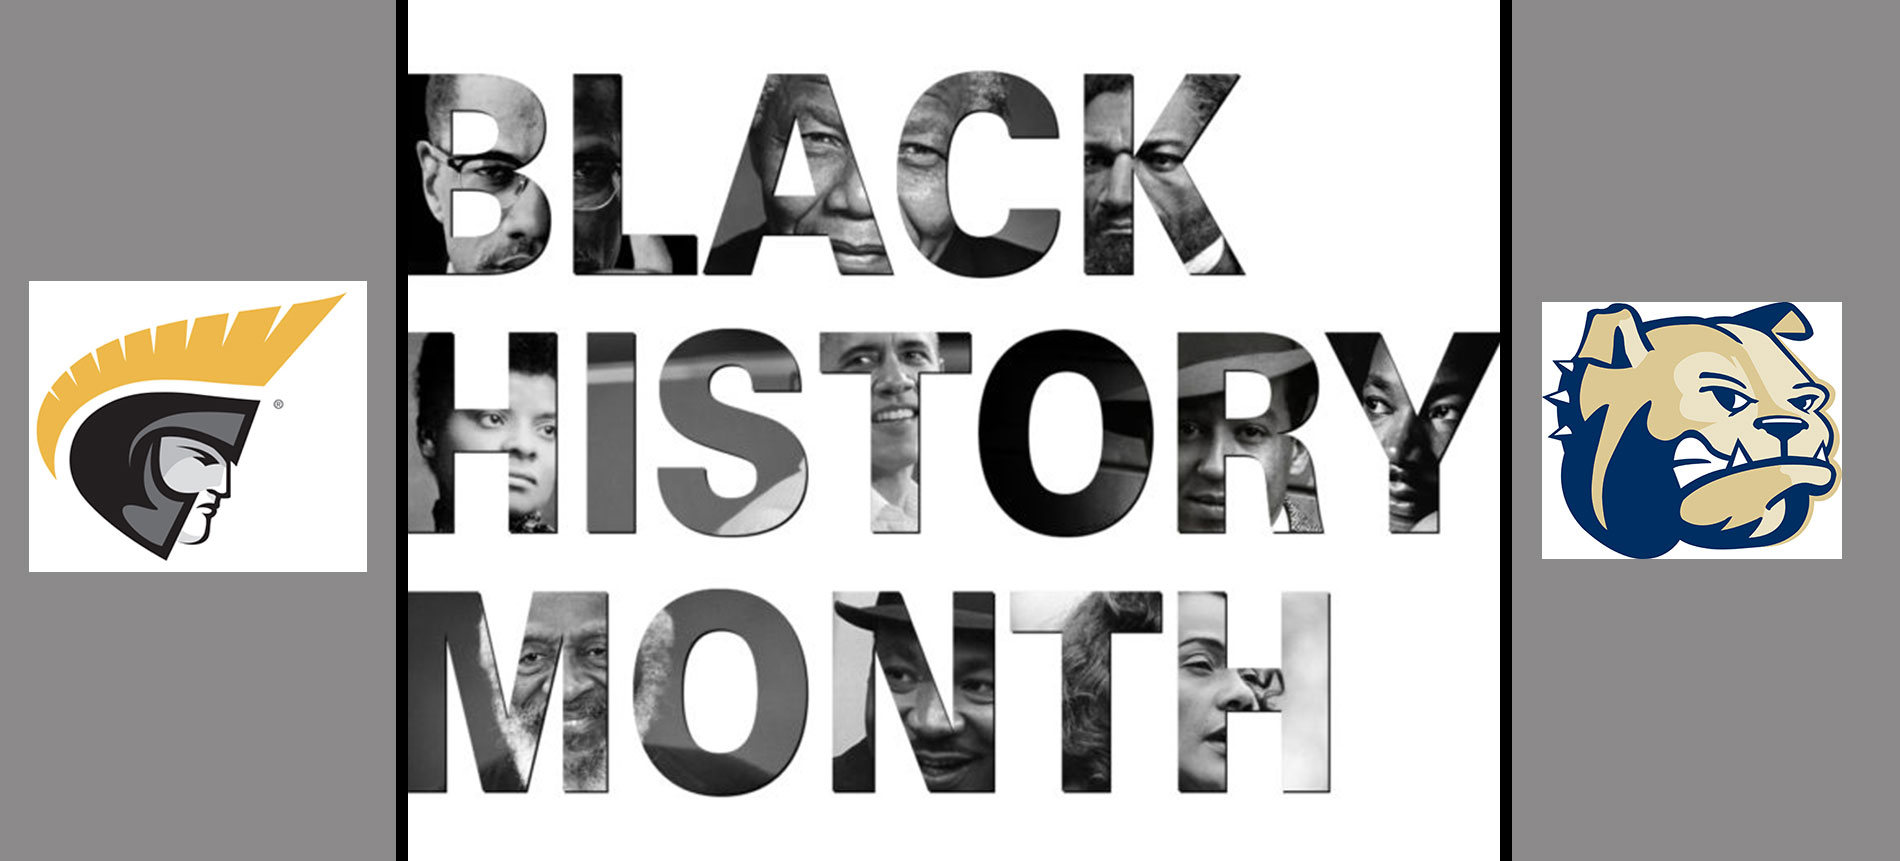 Trojans to Kickoff Black History Month on Saturday